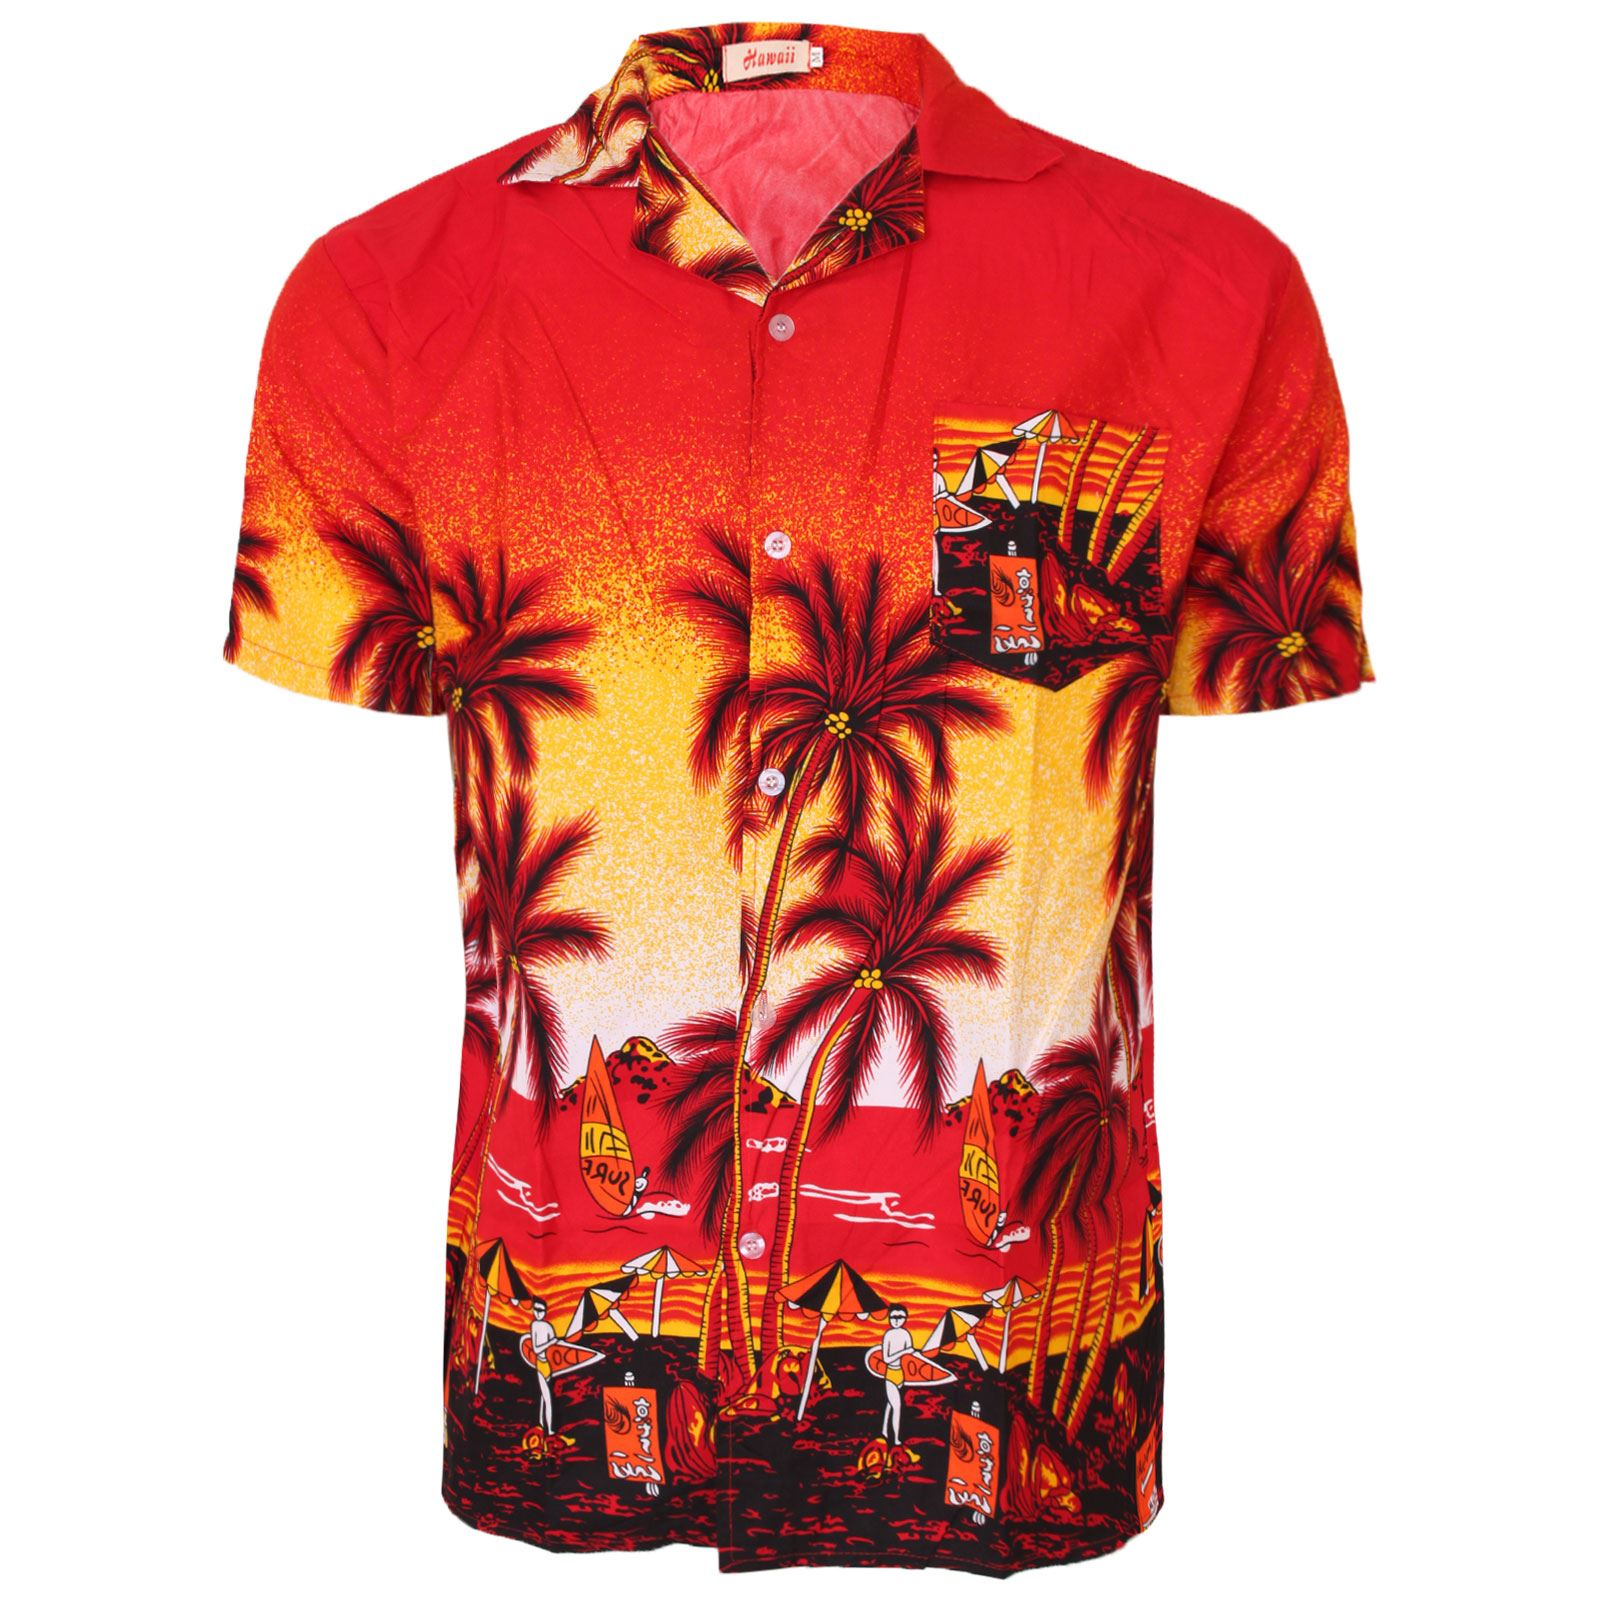 HAWAIIAN MENS SHIRT FLORAL ROCKABILLY SURF BEACH PARTY